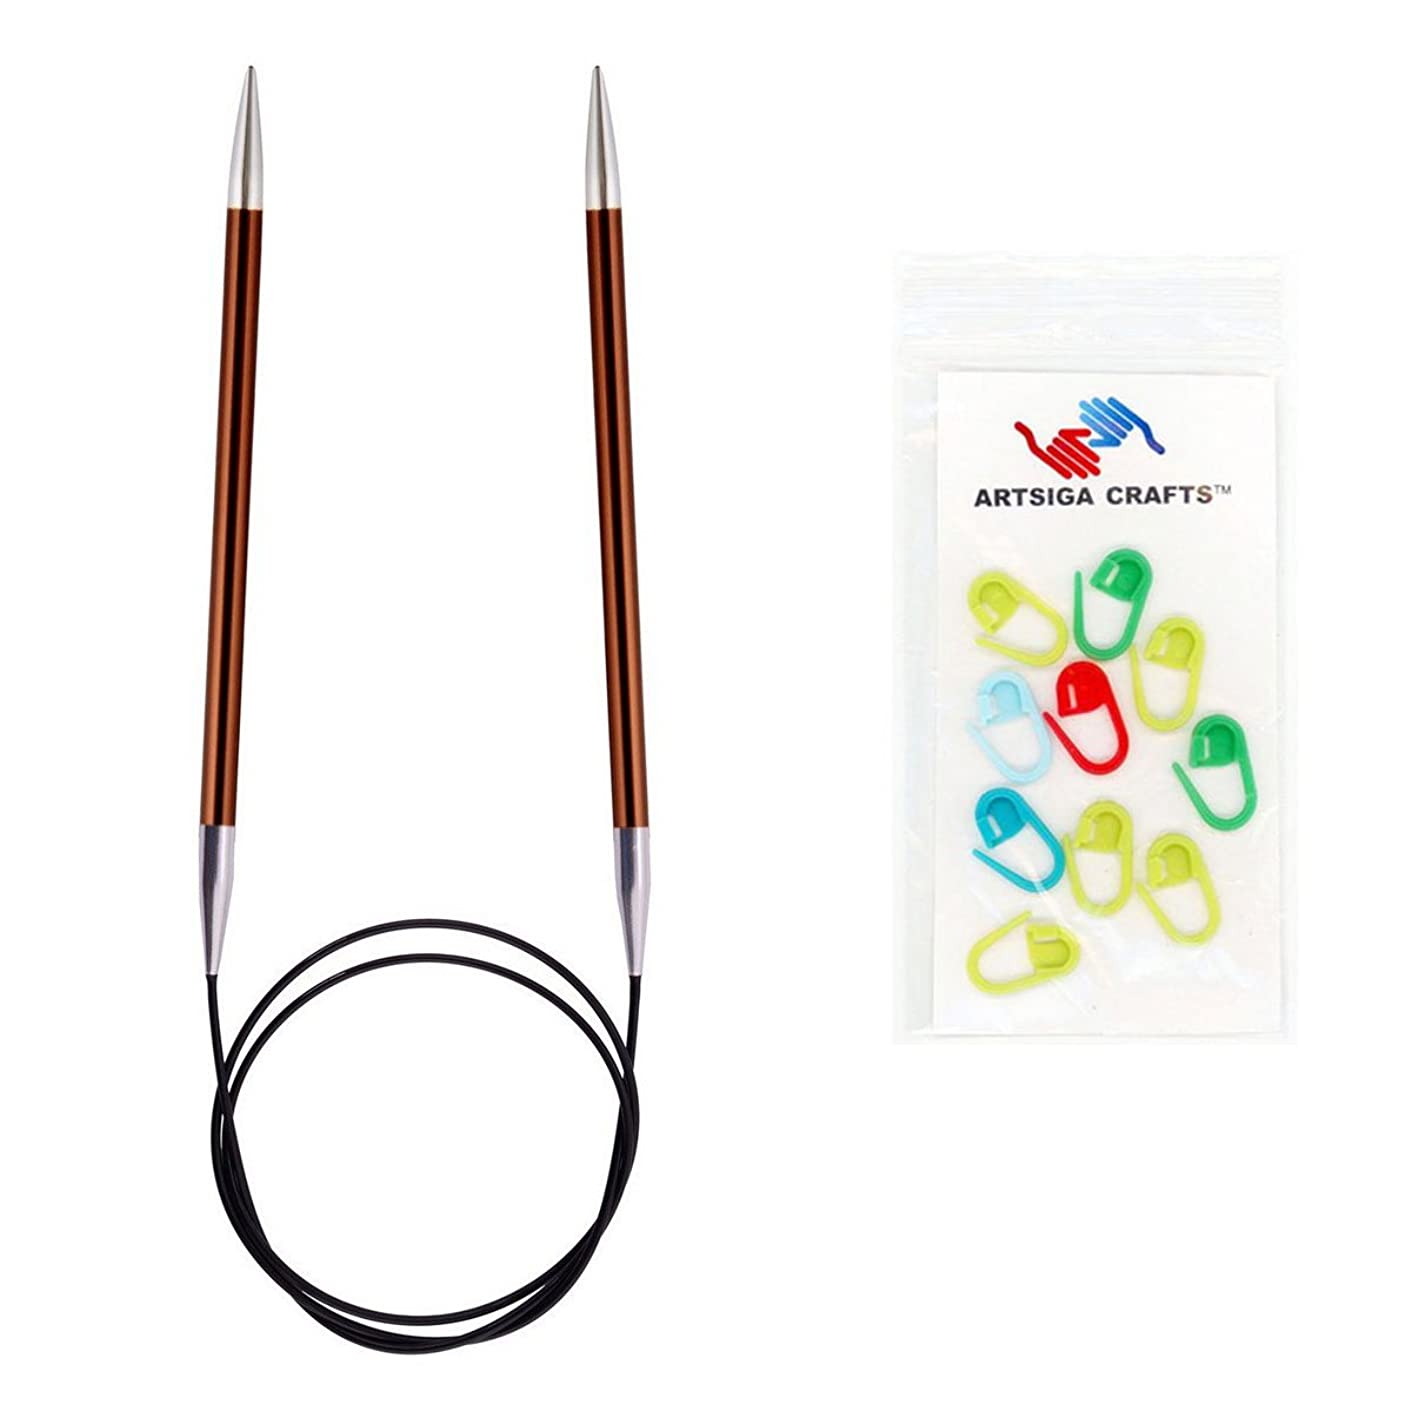 Knitter's Pride Zing Fixed Circular Knitting Needles 40in. Size US 9 (5.5mm) Bundle with 10 Artsiga Crafts Stitch Markers 140162